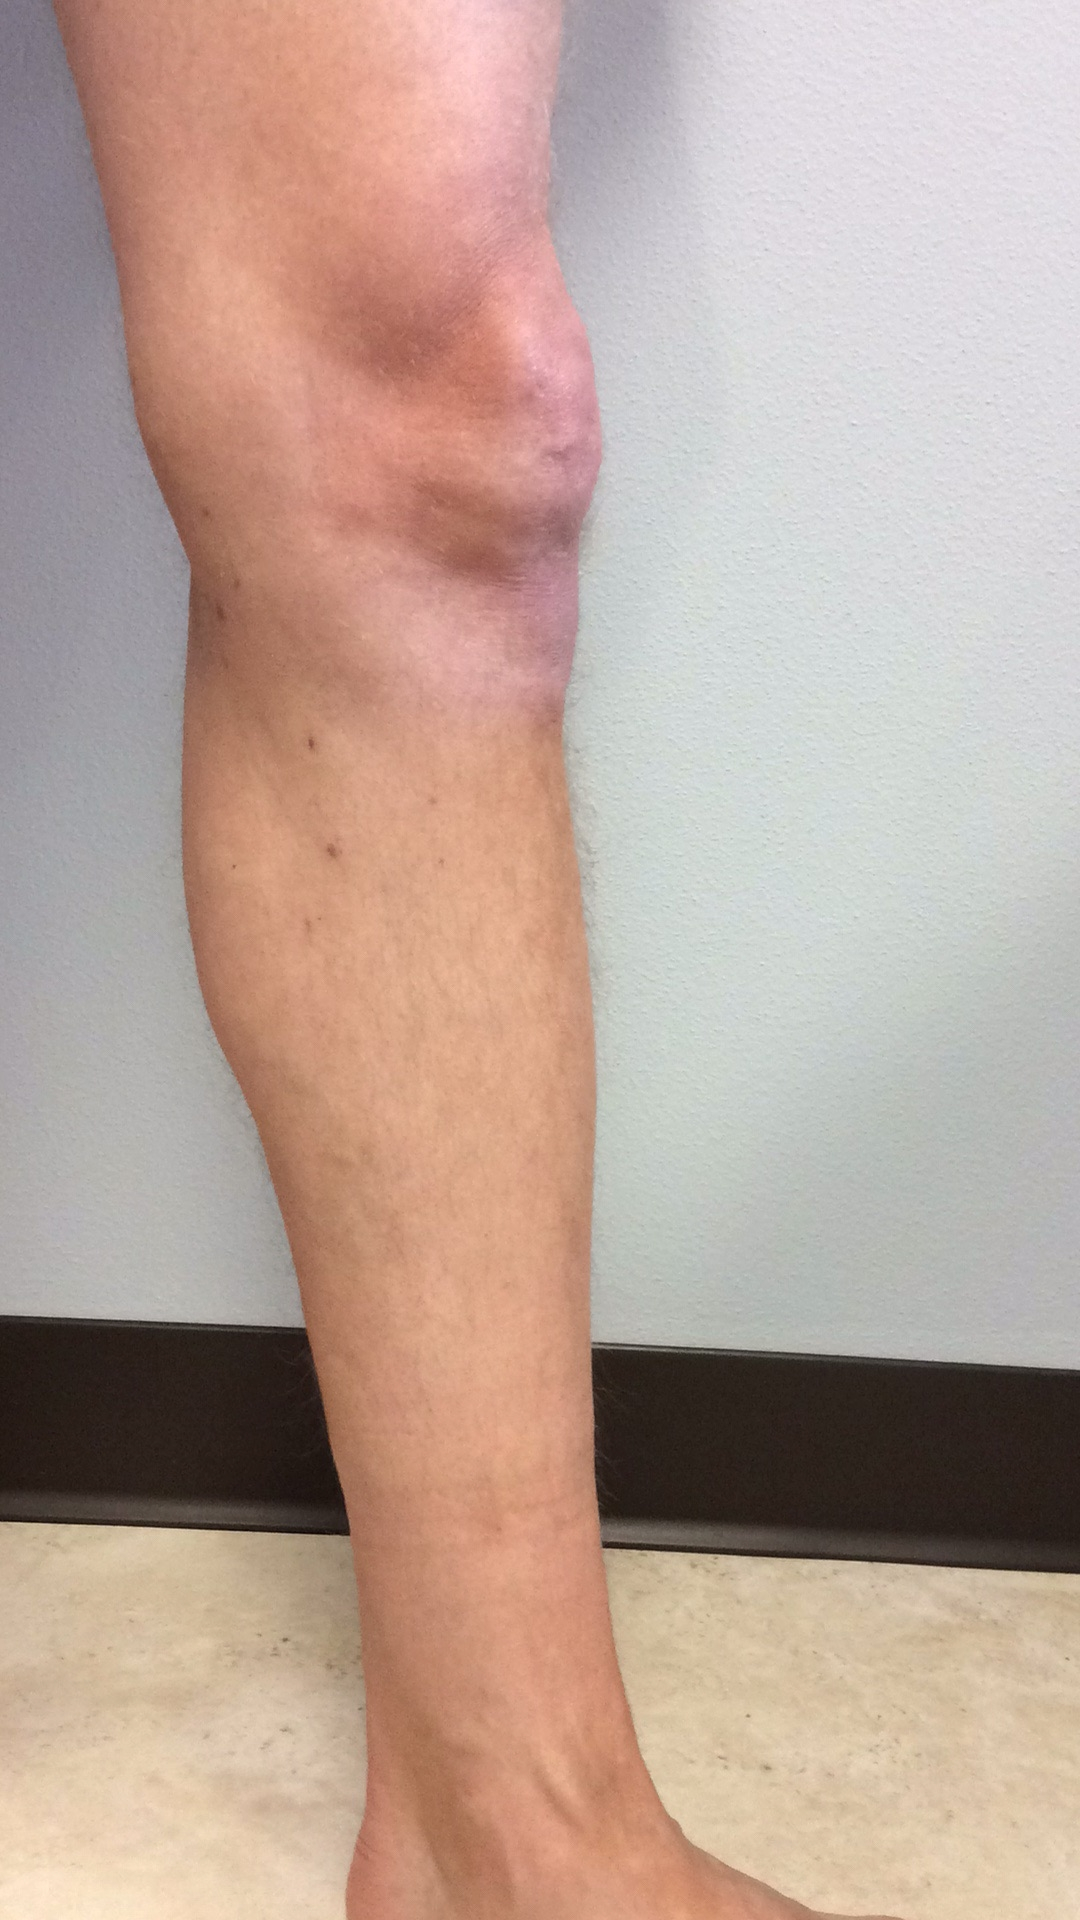 After vein treatment image for varicose veins